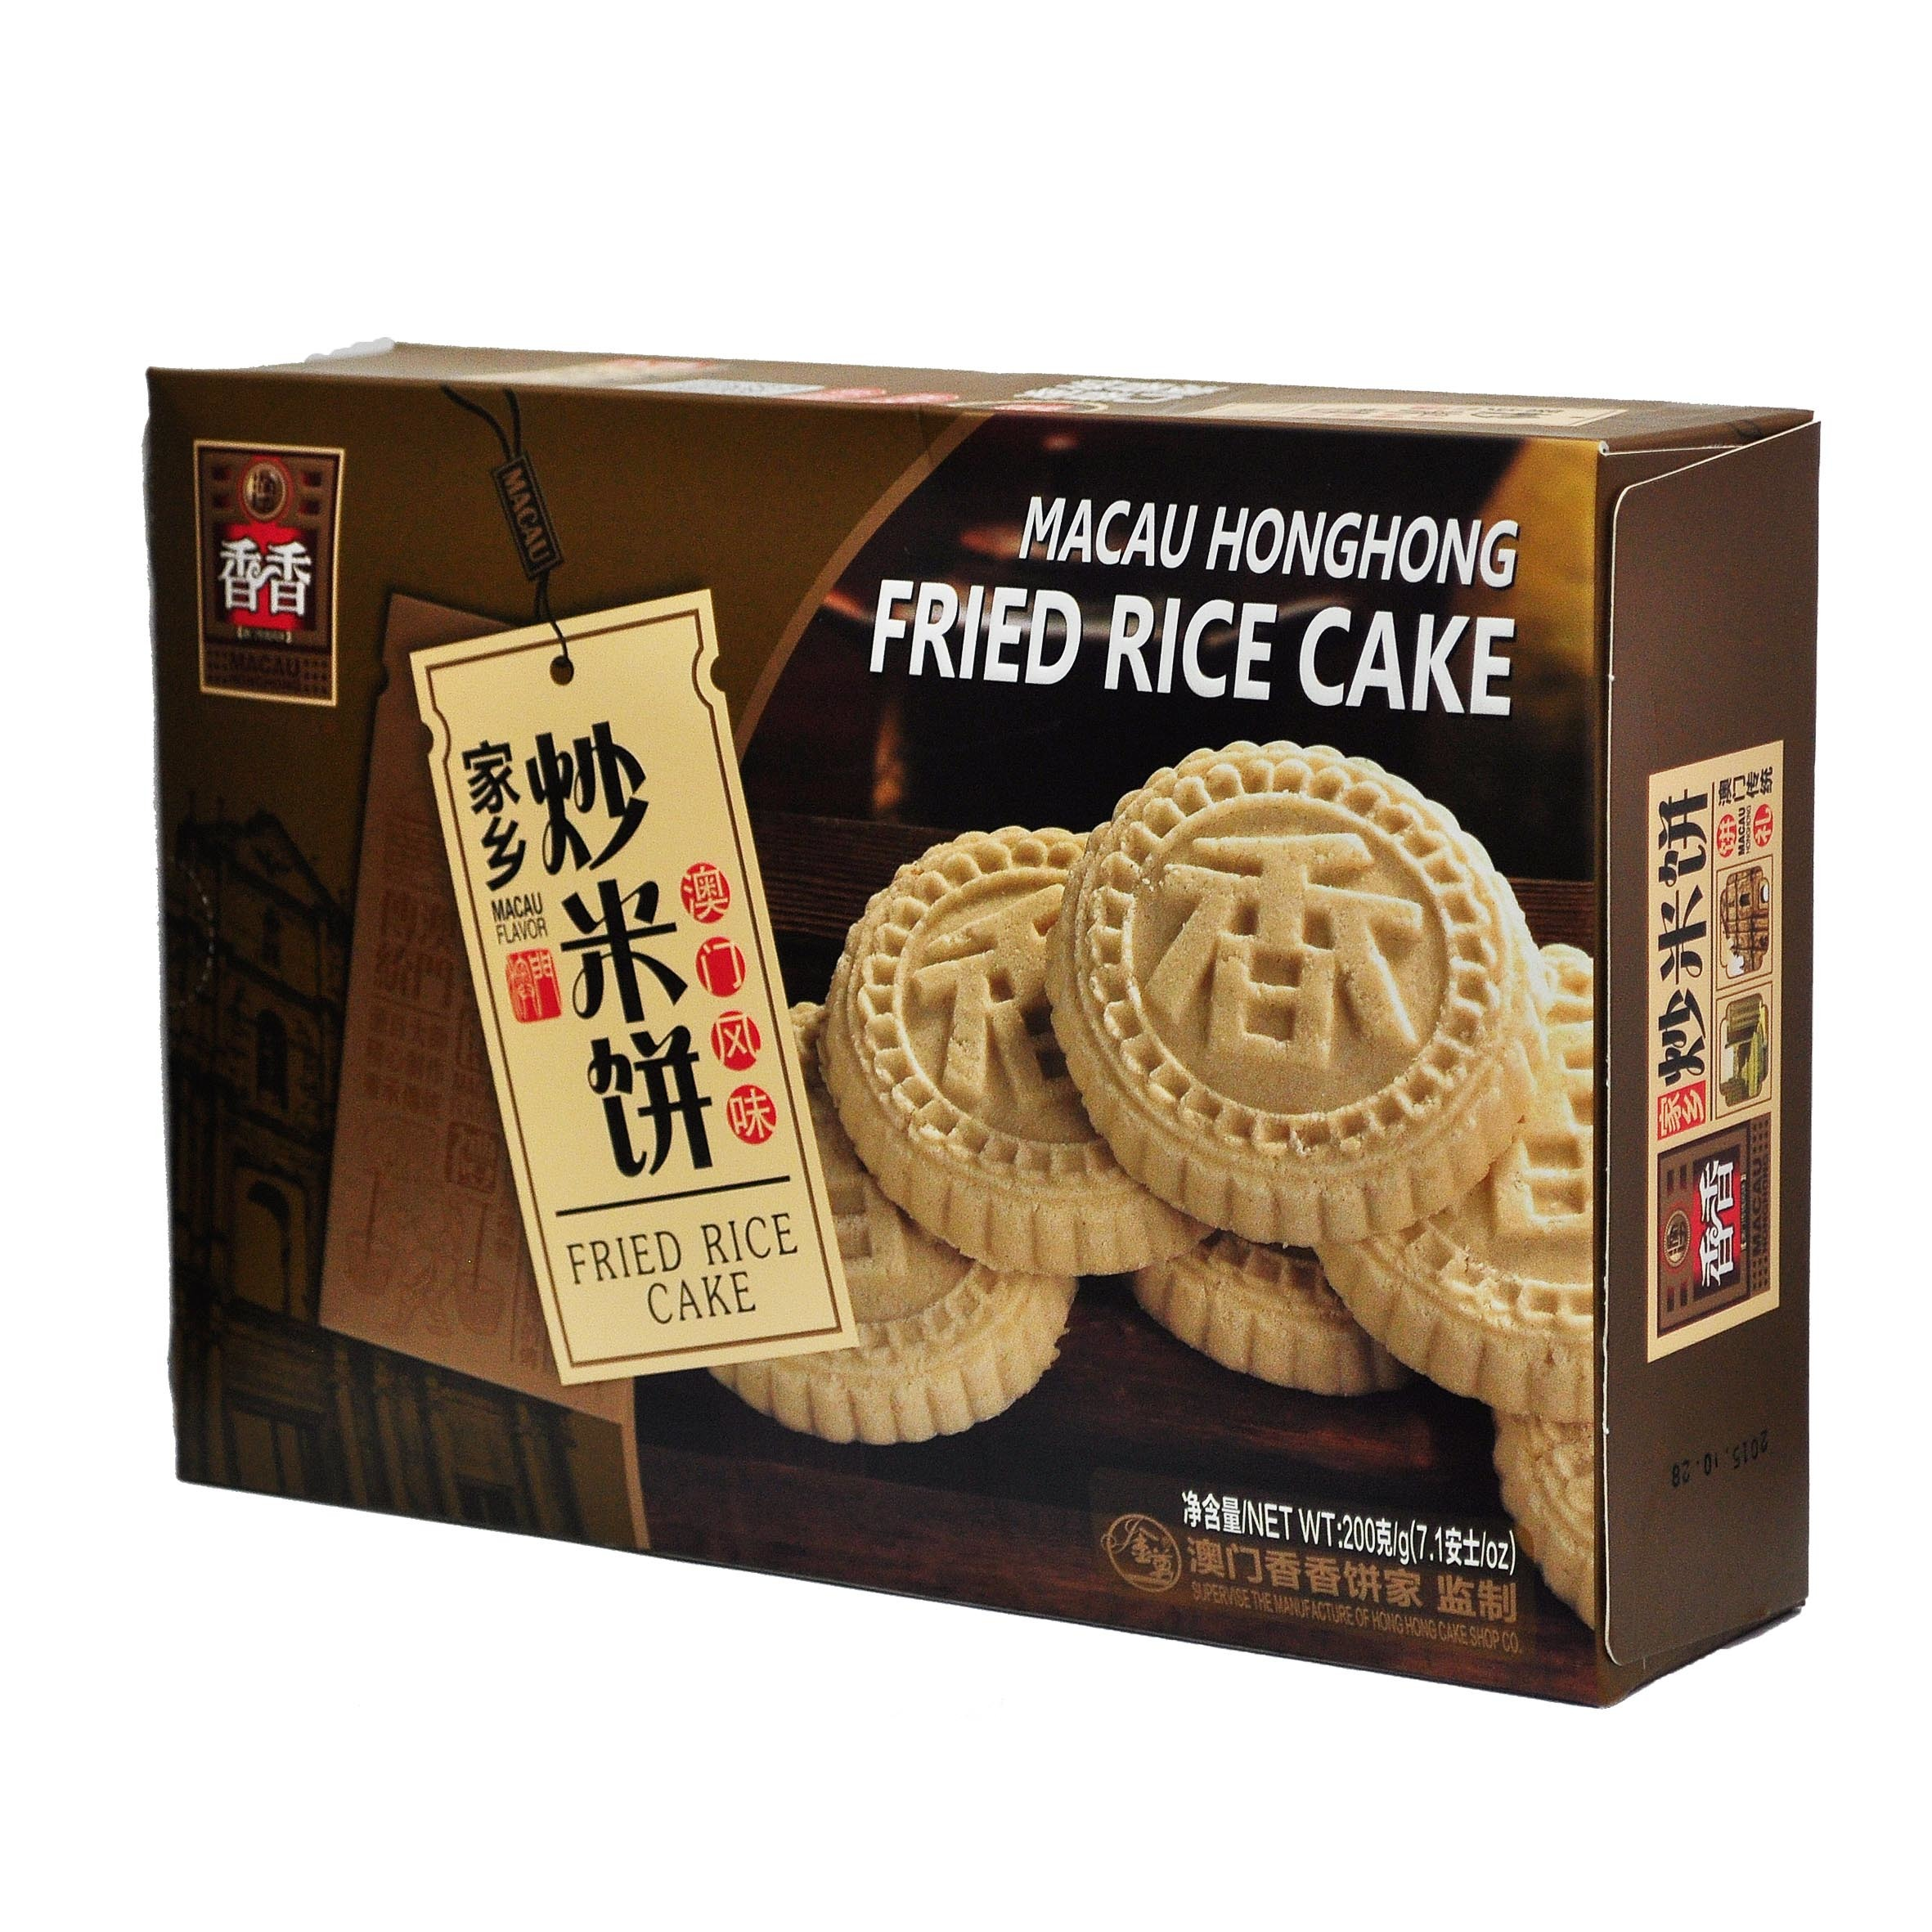 Macau Hong Kong Fried RIce Cake Side.jpg